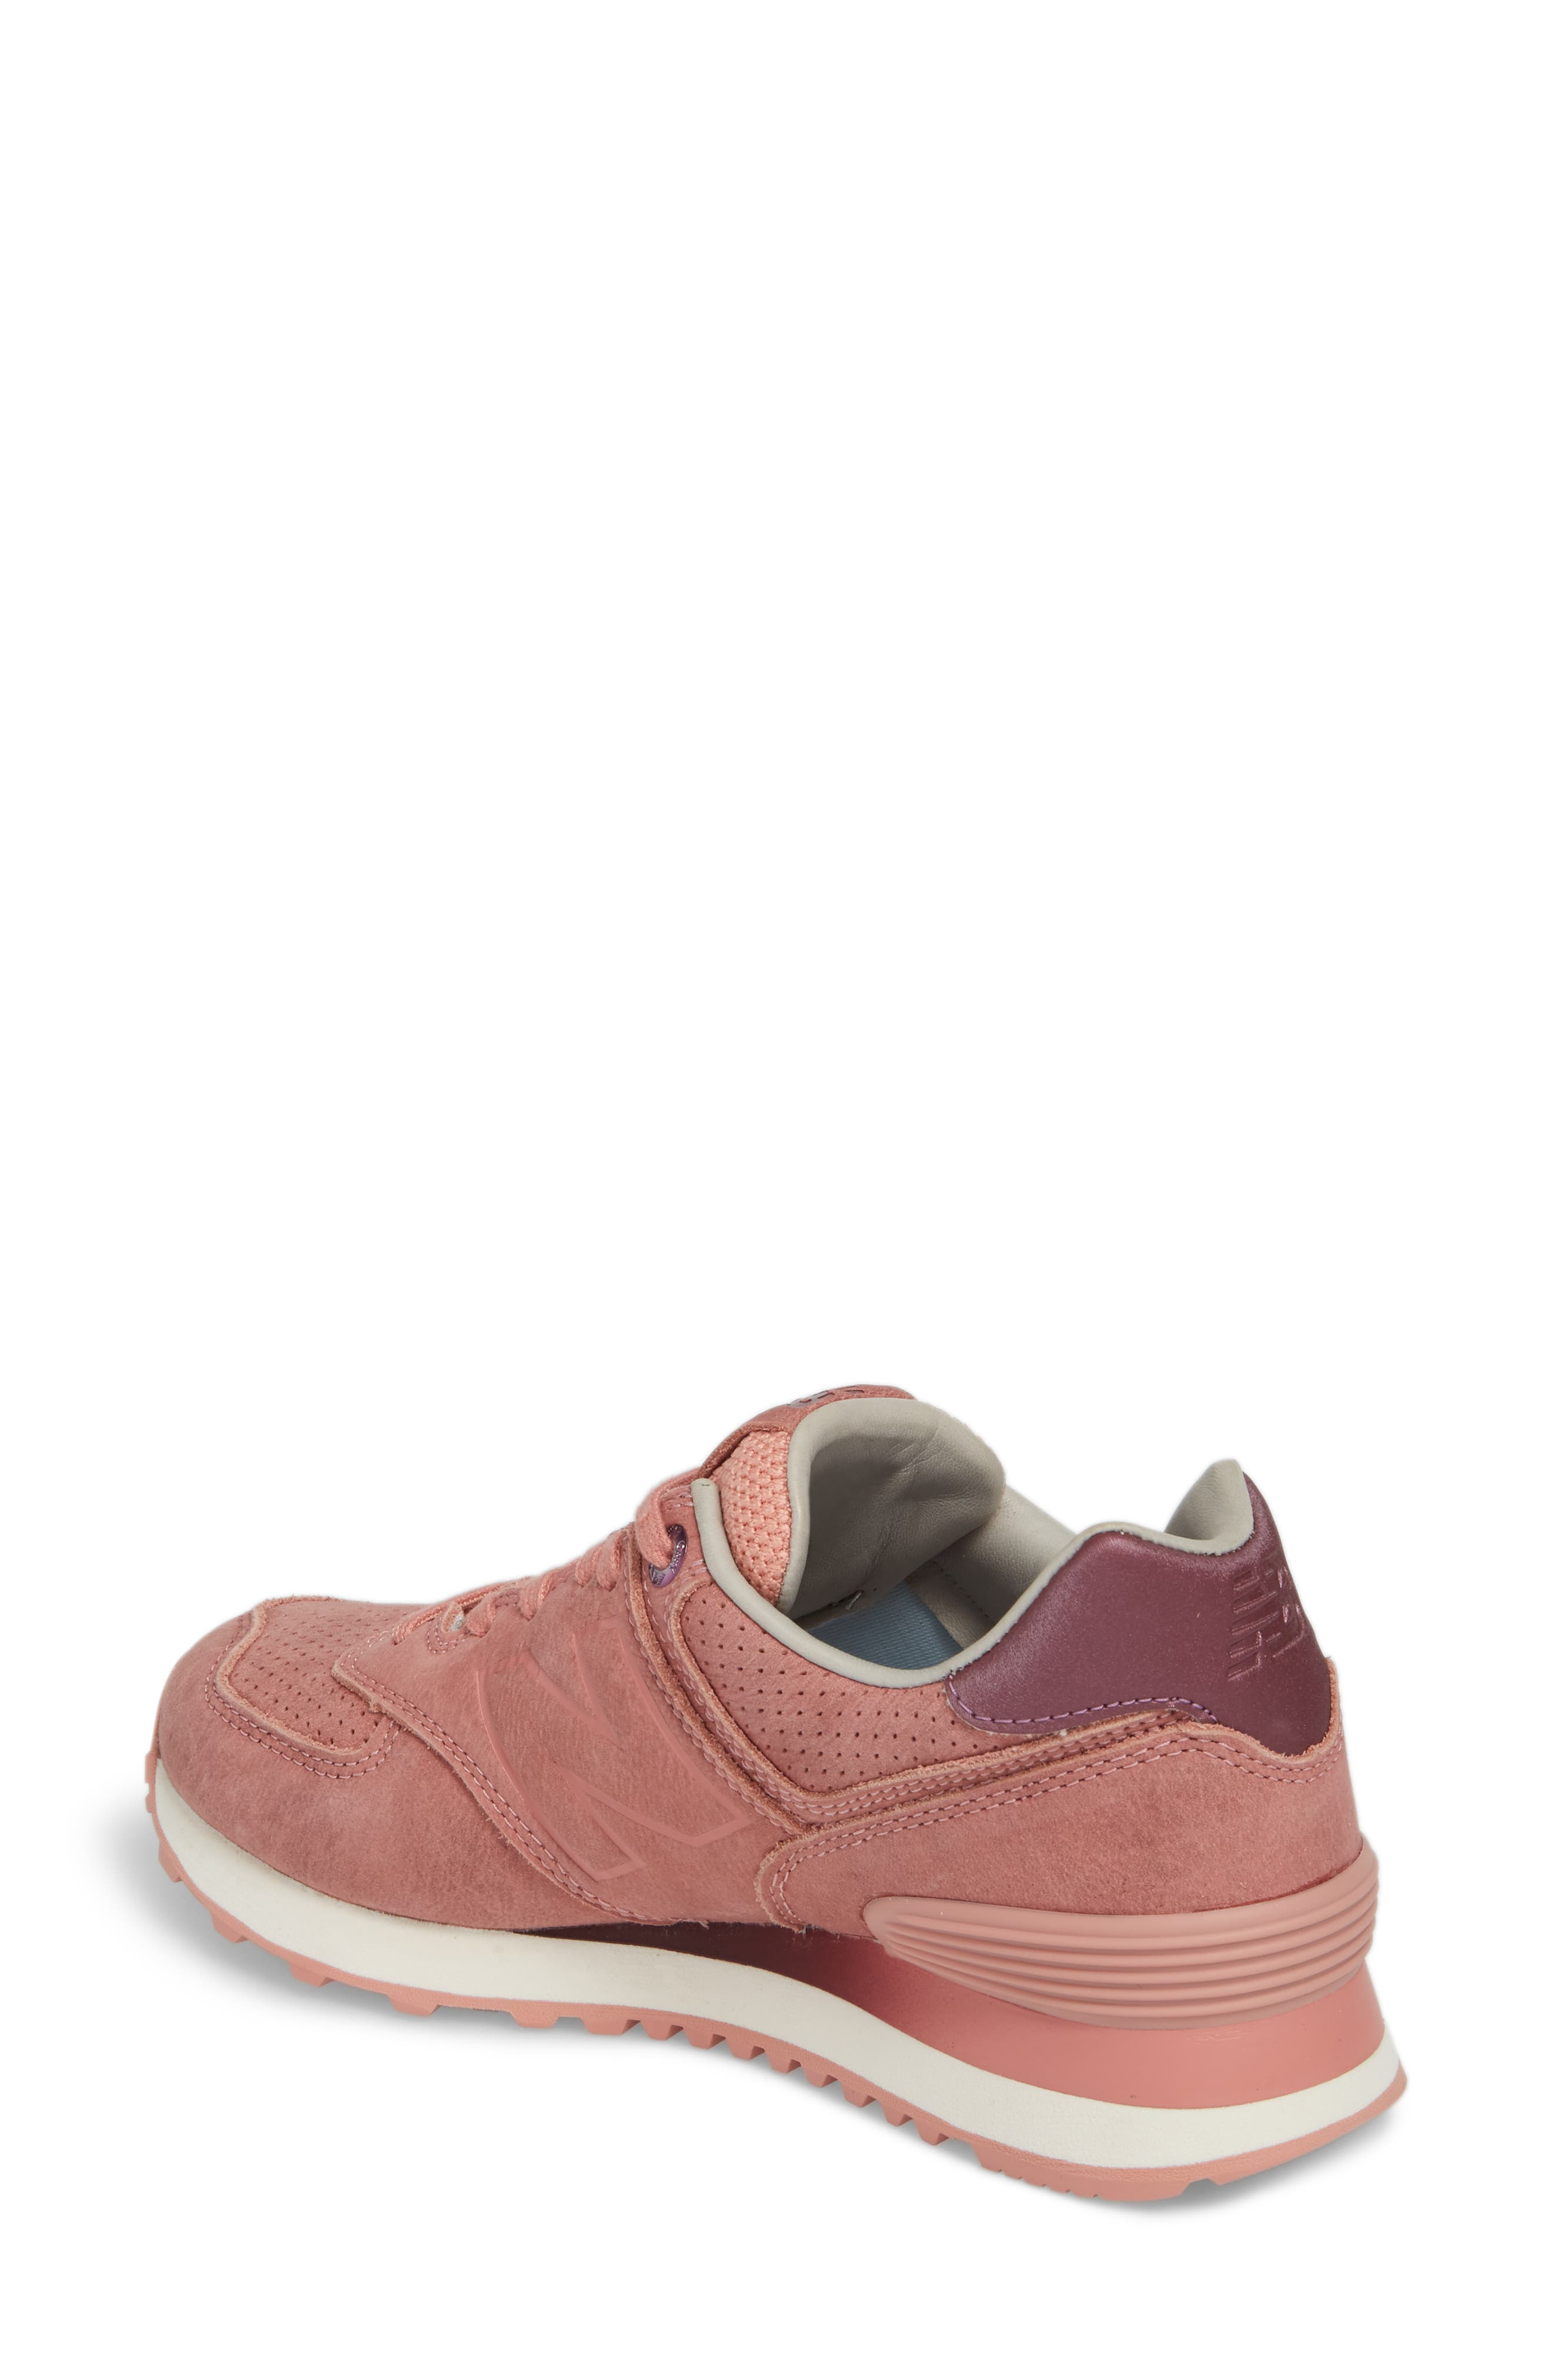 574 Sneaker,                             Alternate thumbnail 2, color,                             Dusted Peach